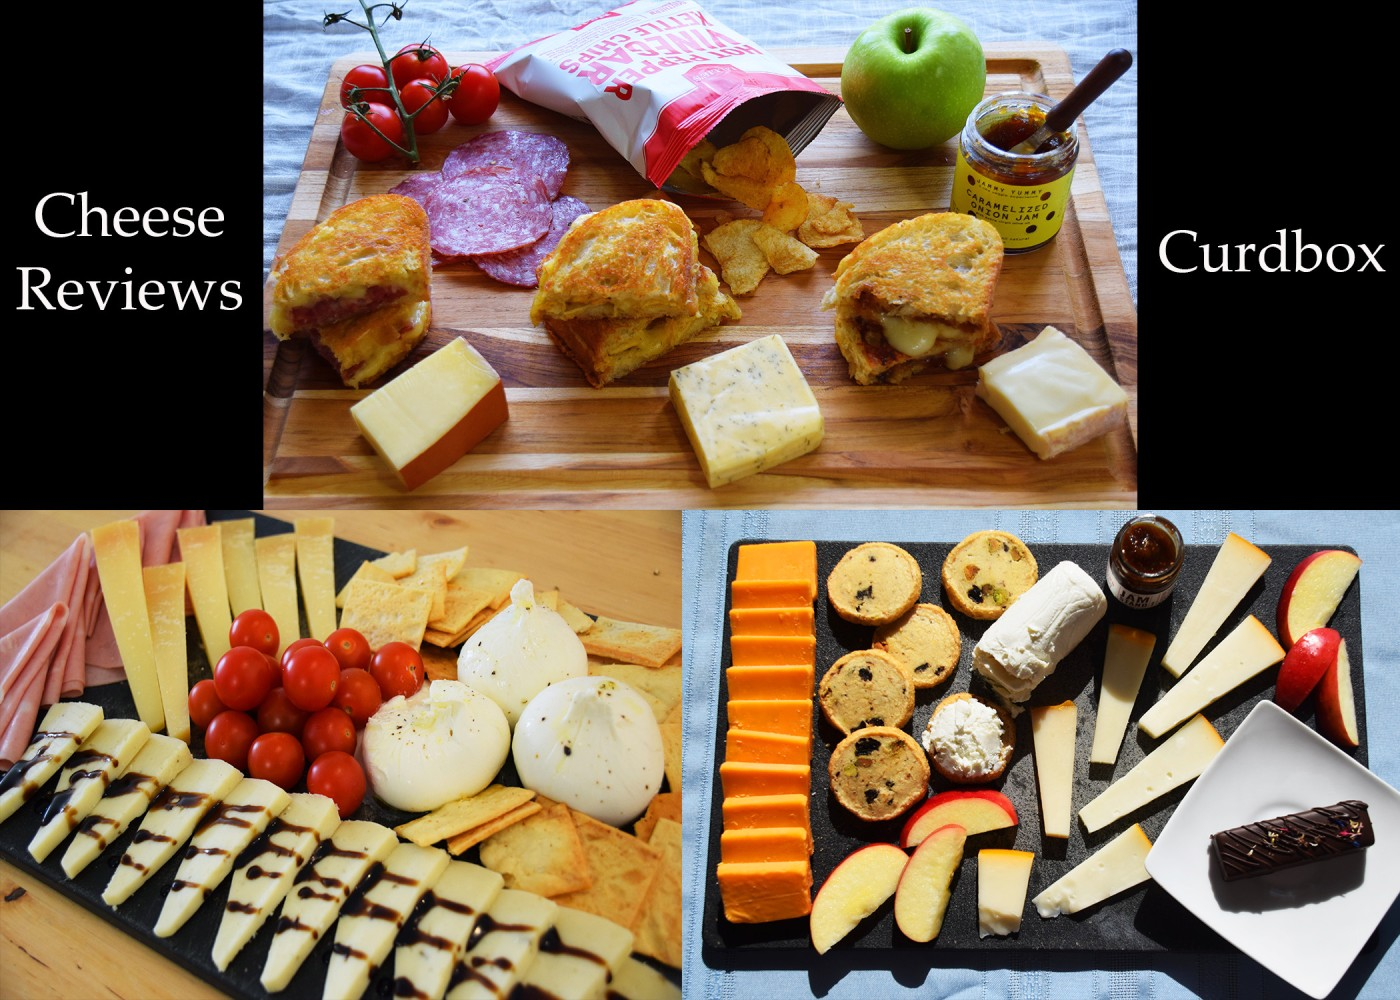 Three images of cheese boards on a black background